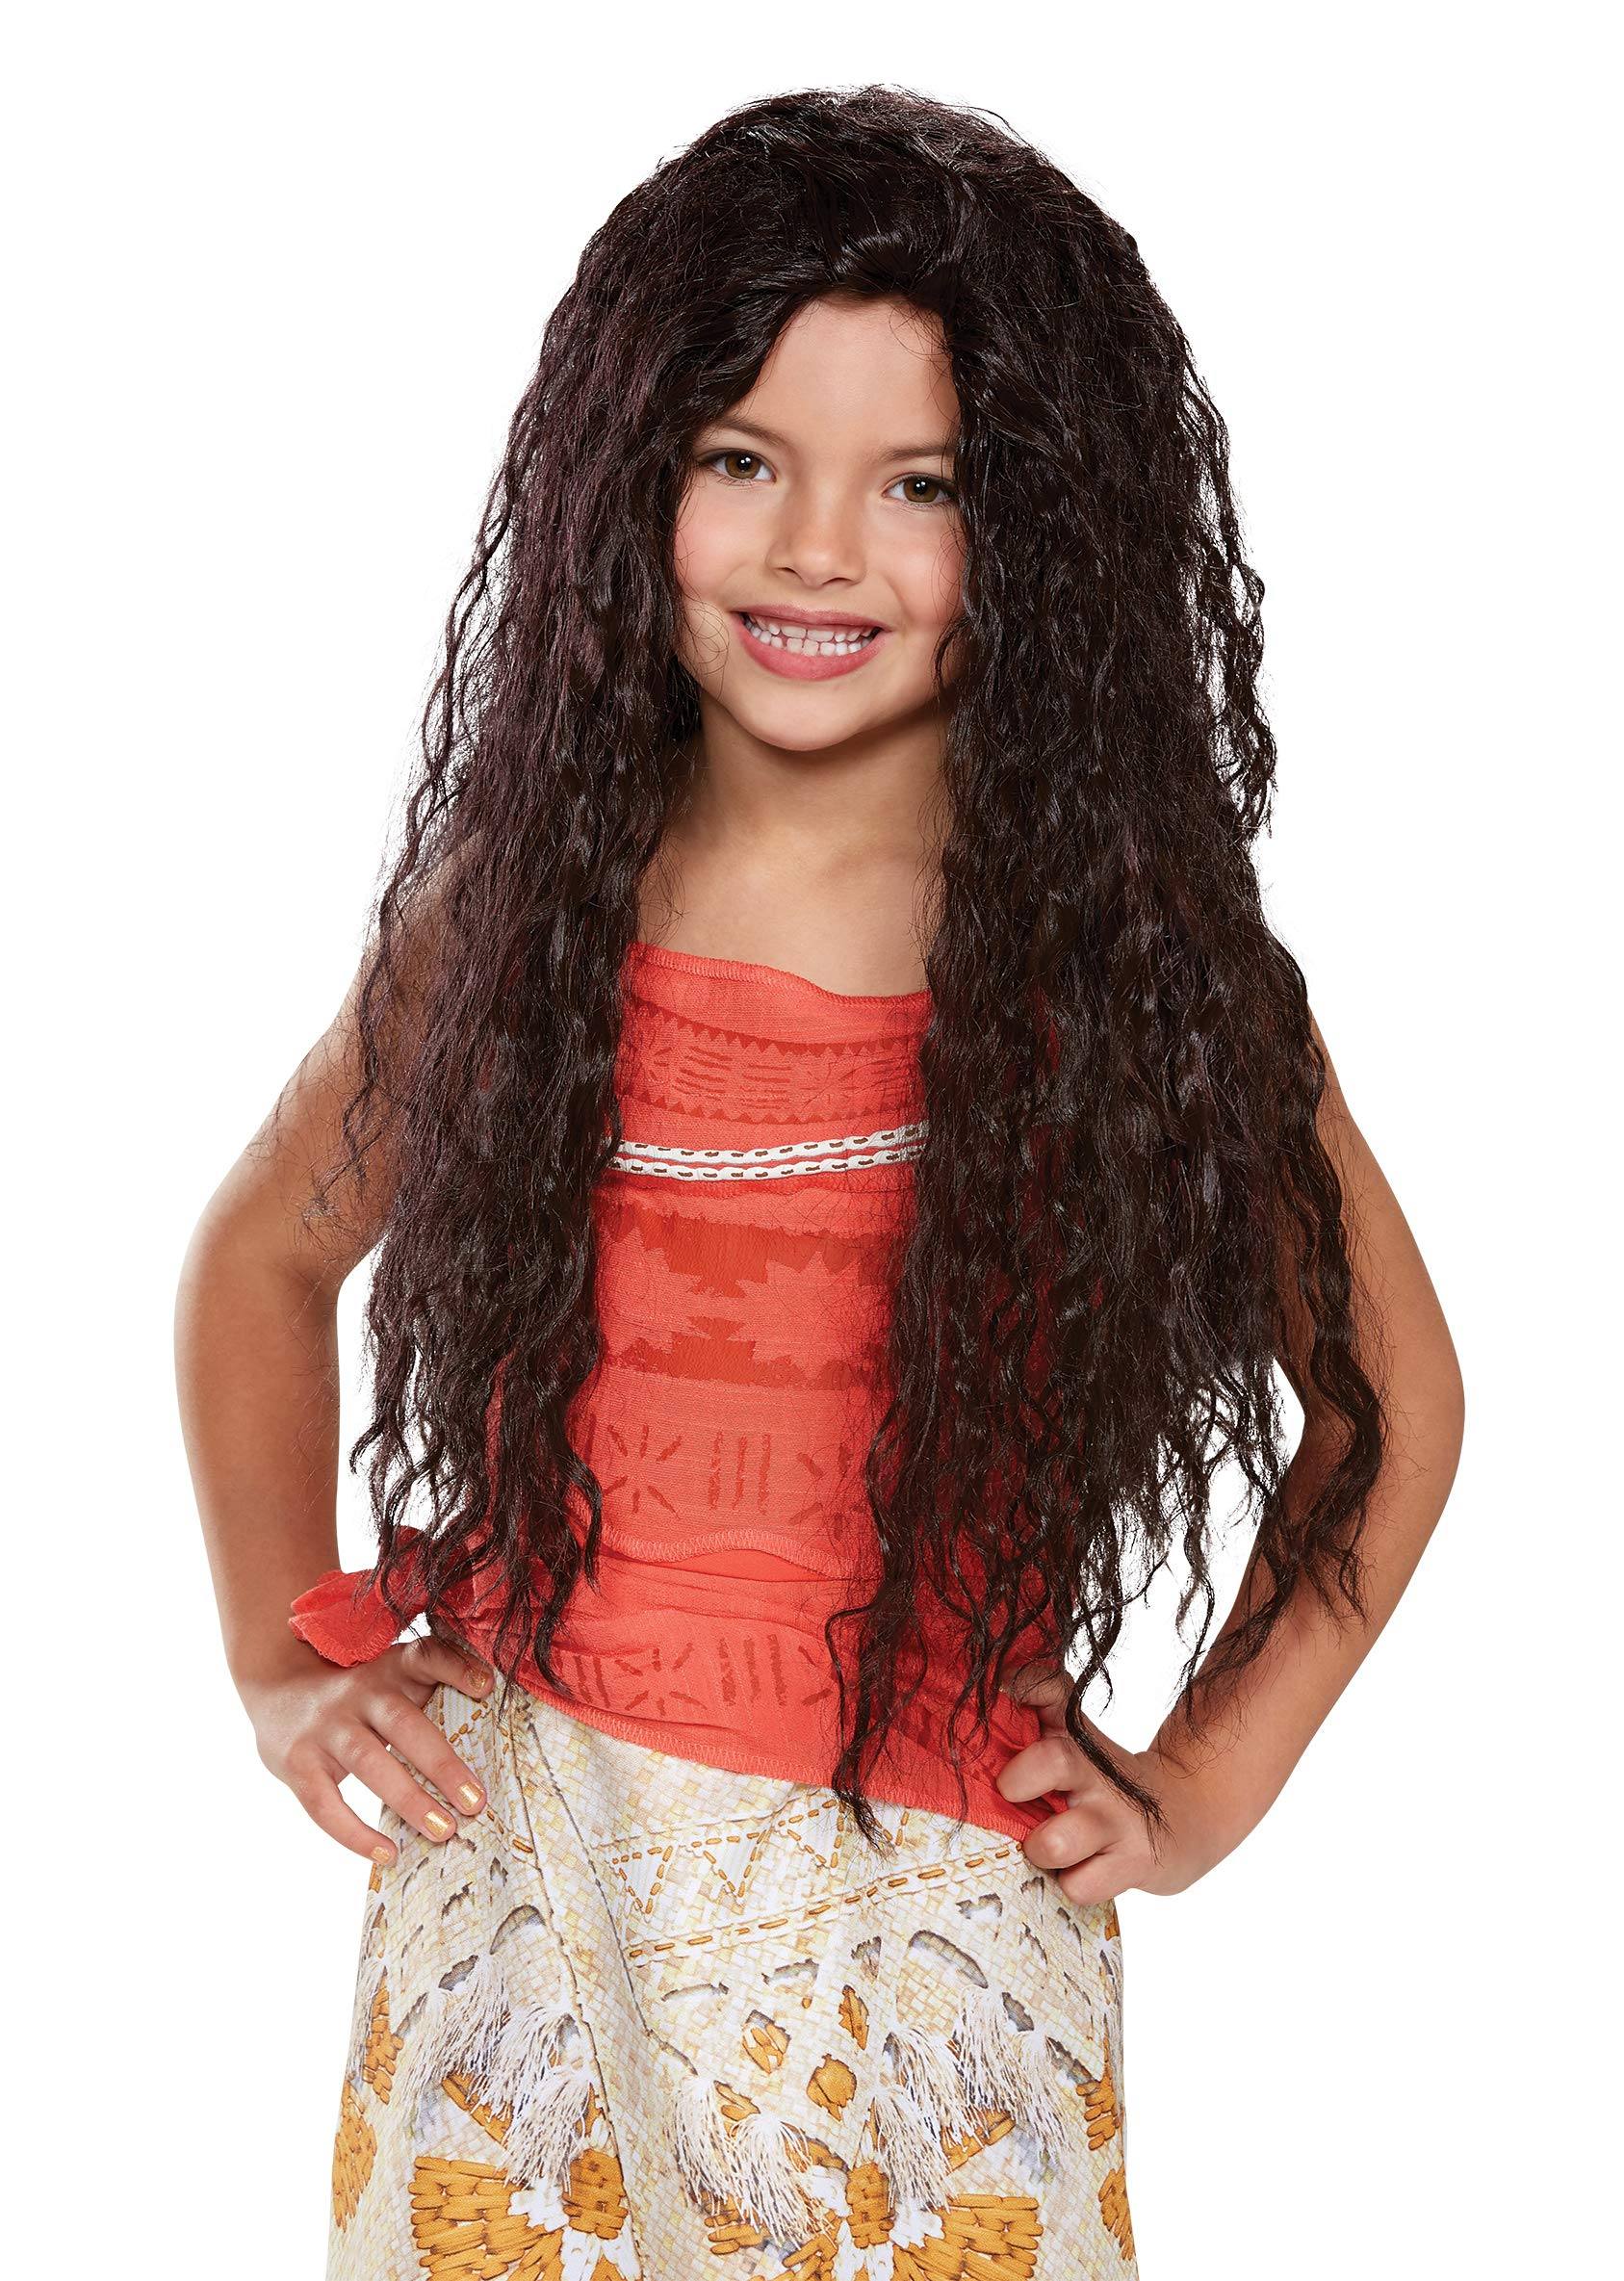 Disguise Girl's Moana Deluxe Child Wig(4 Pack)